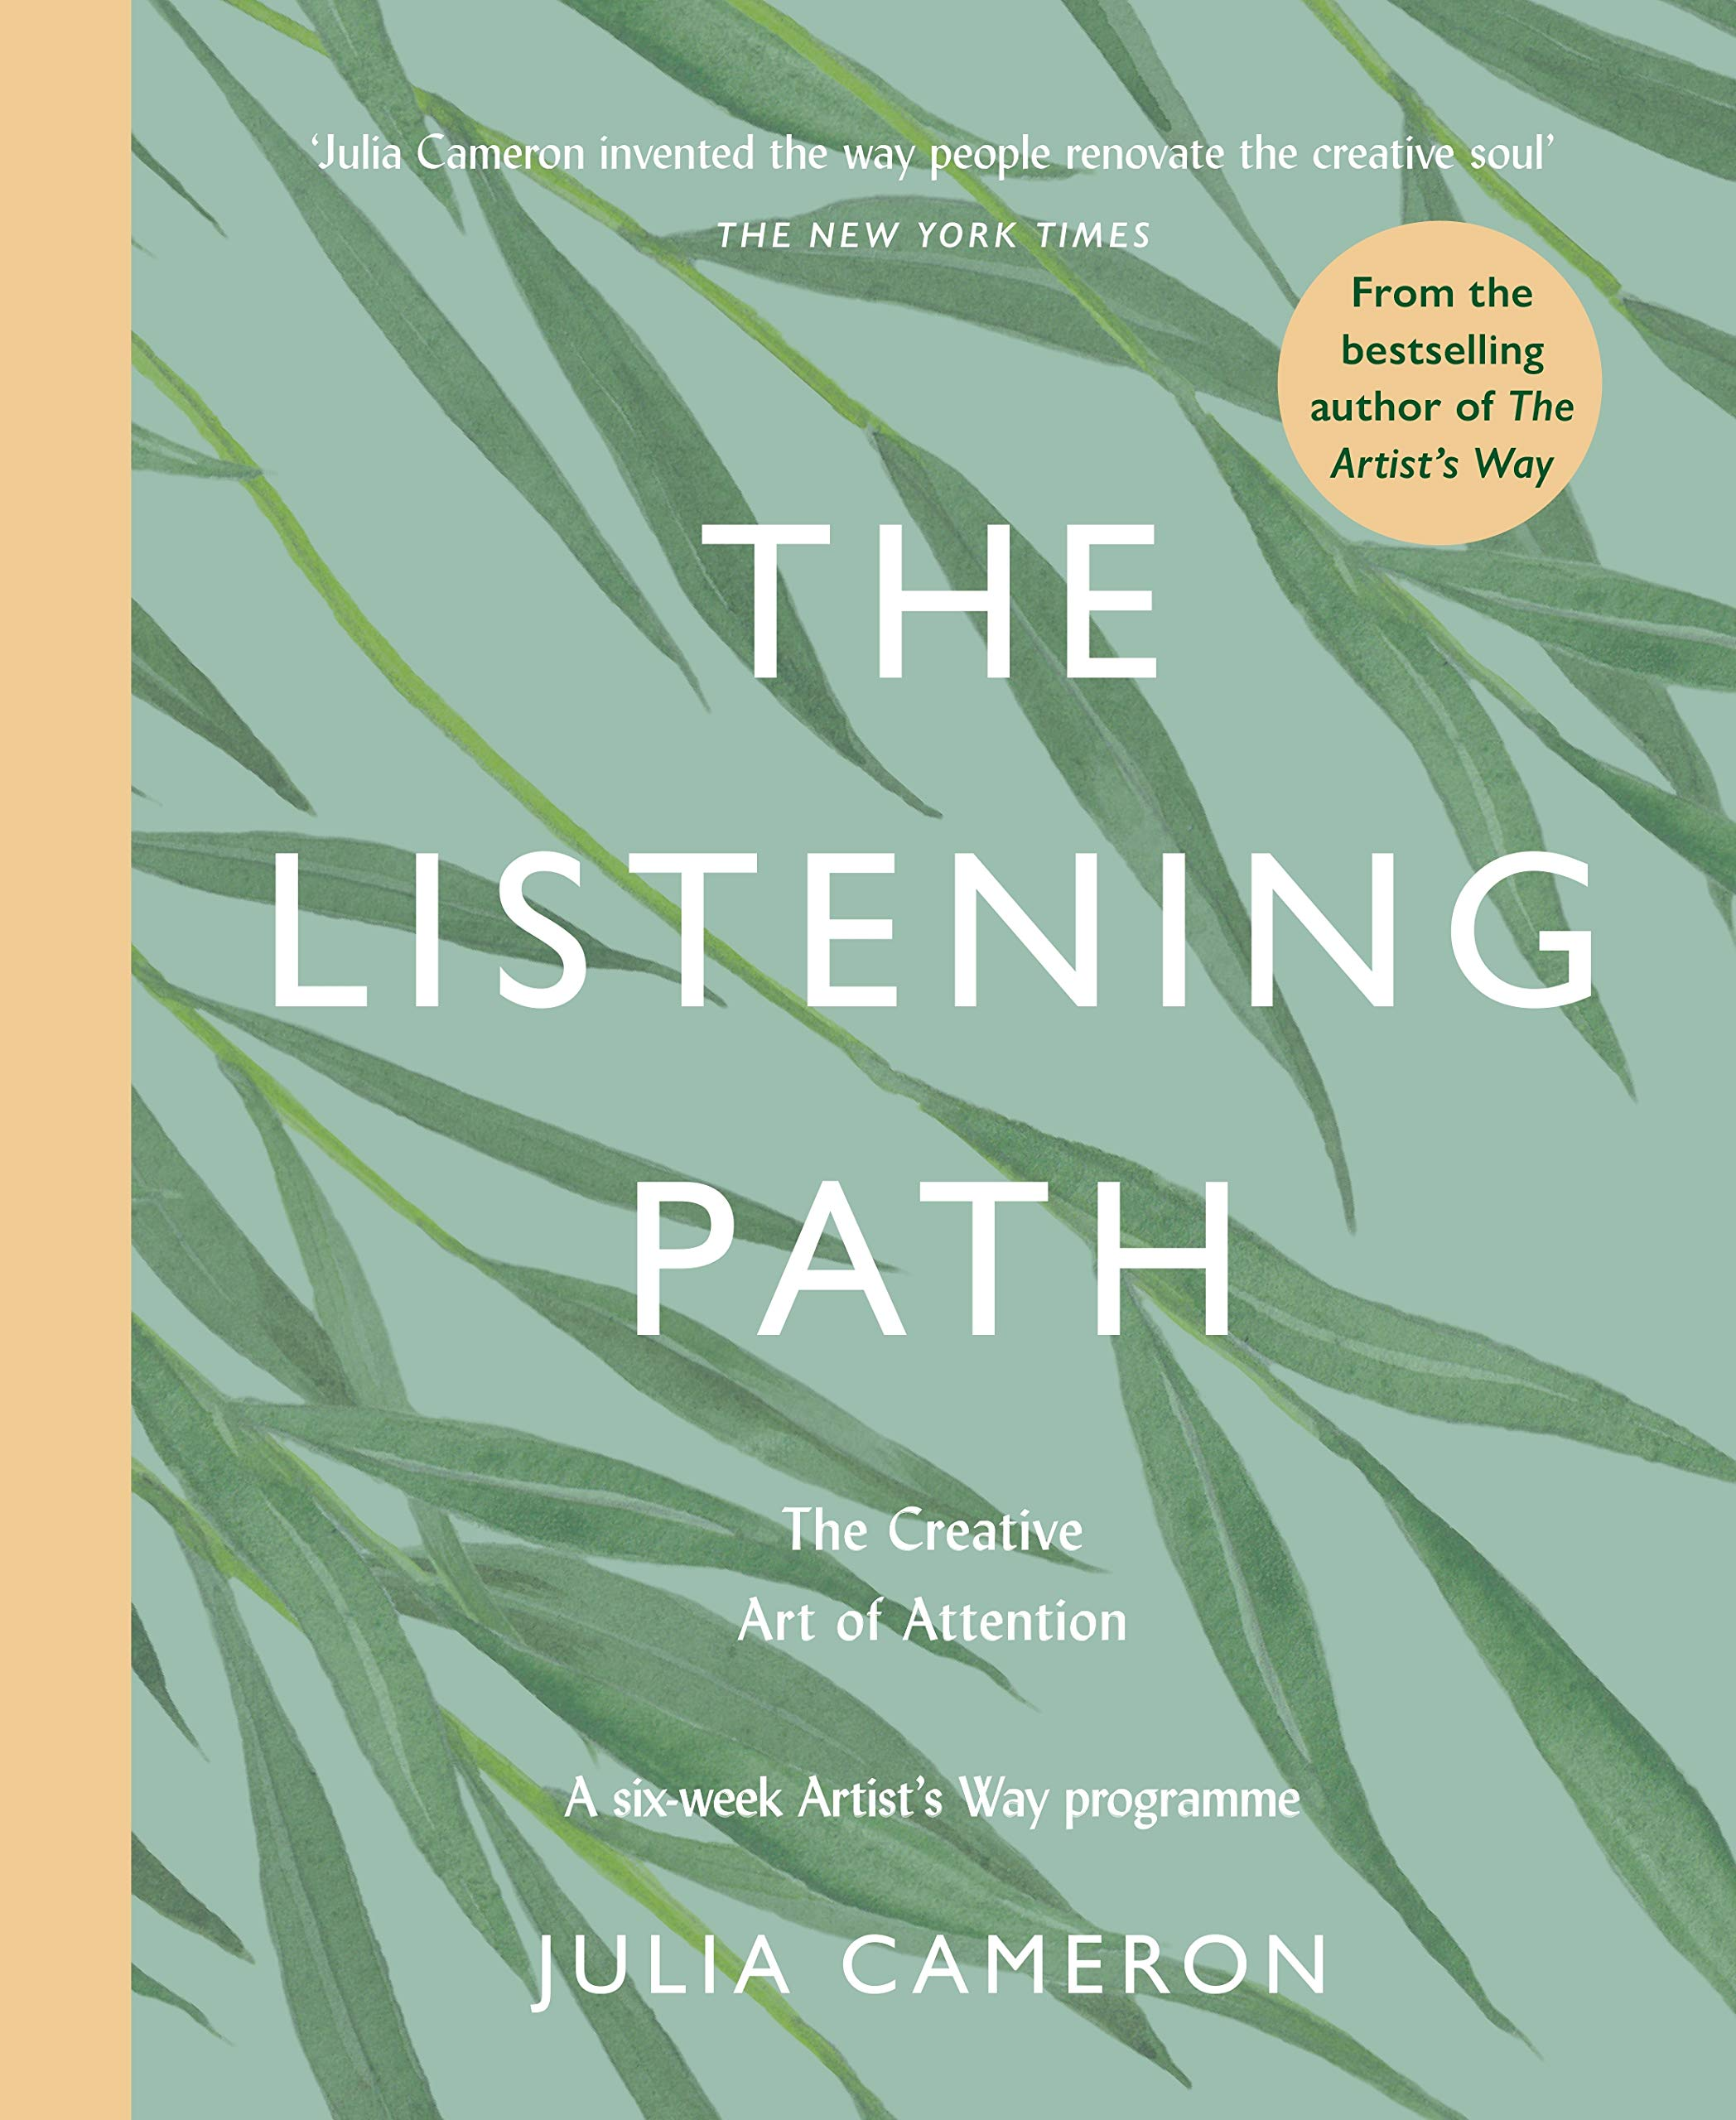 Julia Cameron: The Listening Path